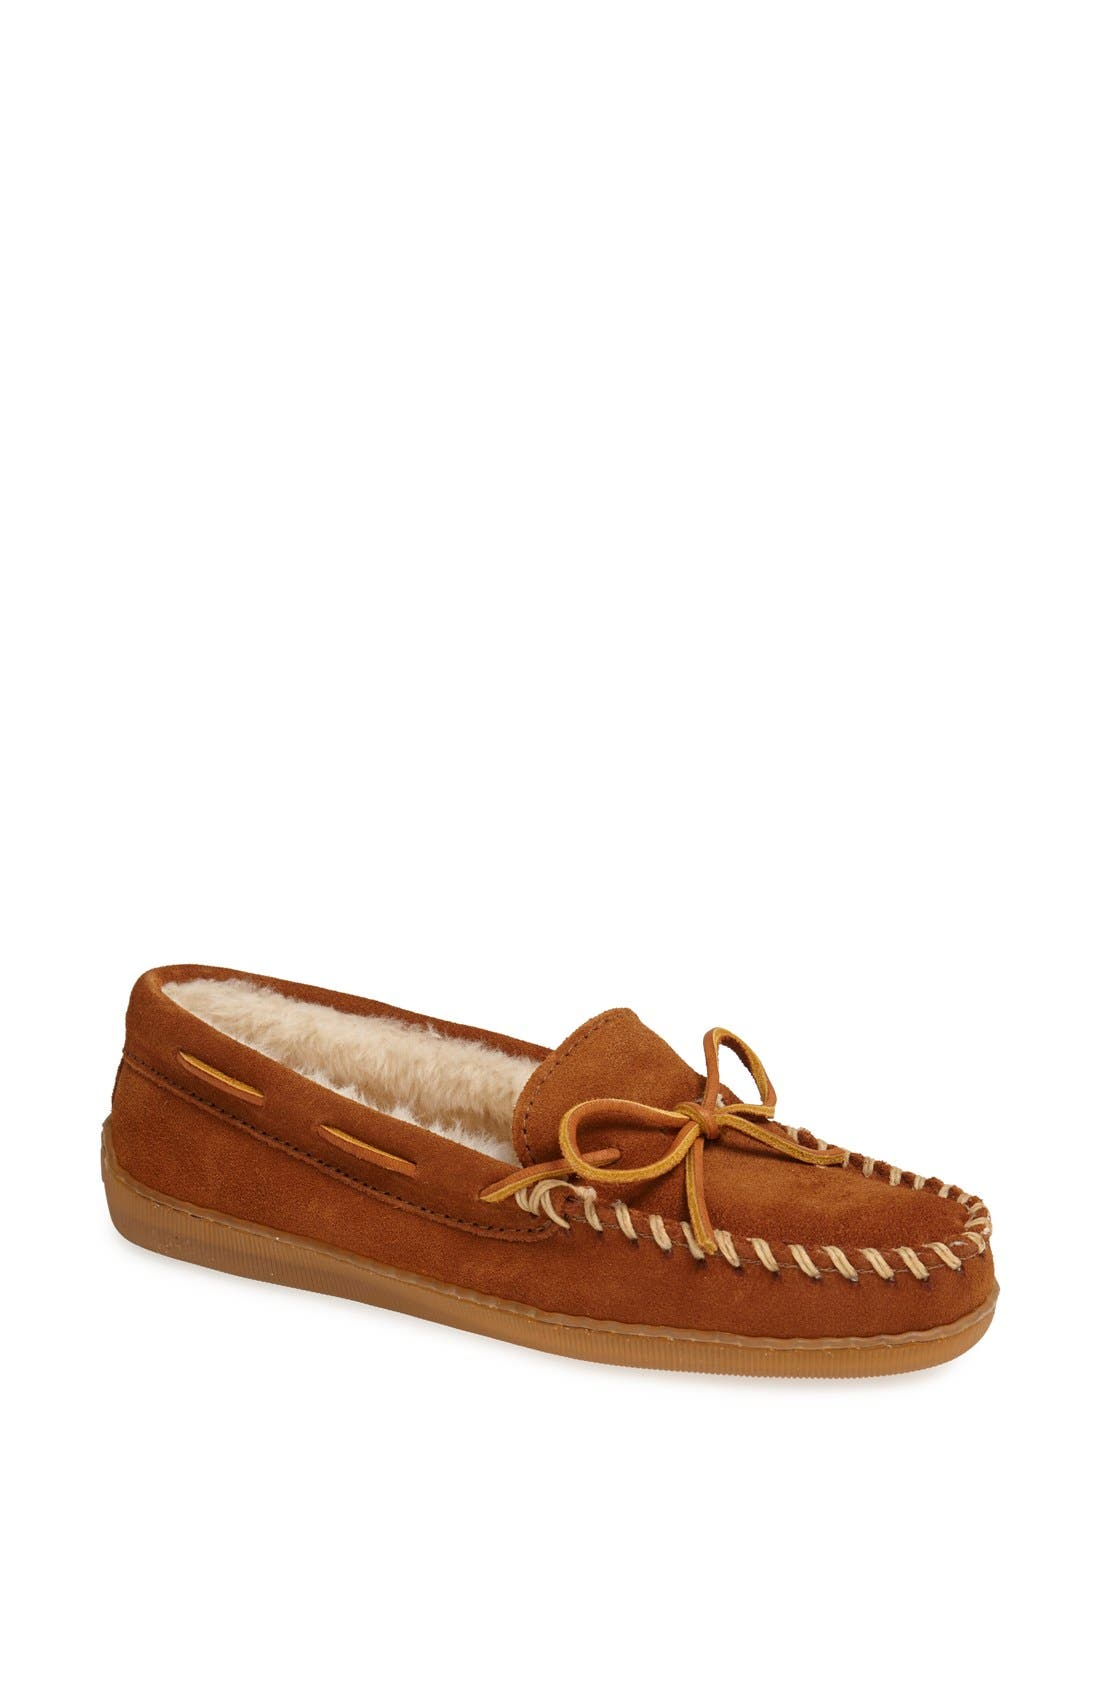 Alternate Image 1 Selected - Minnetonka Moccasin Slipper